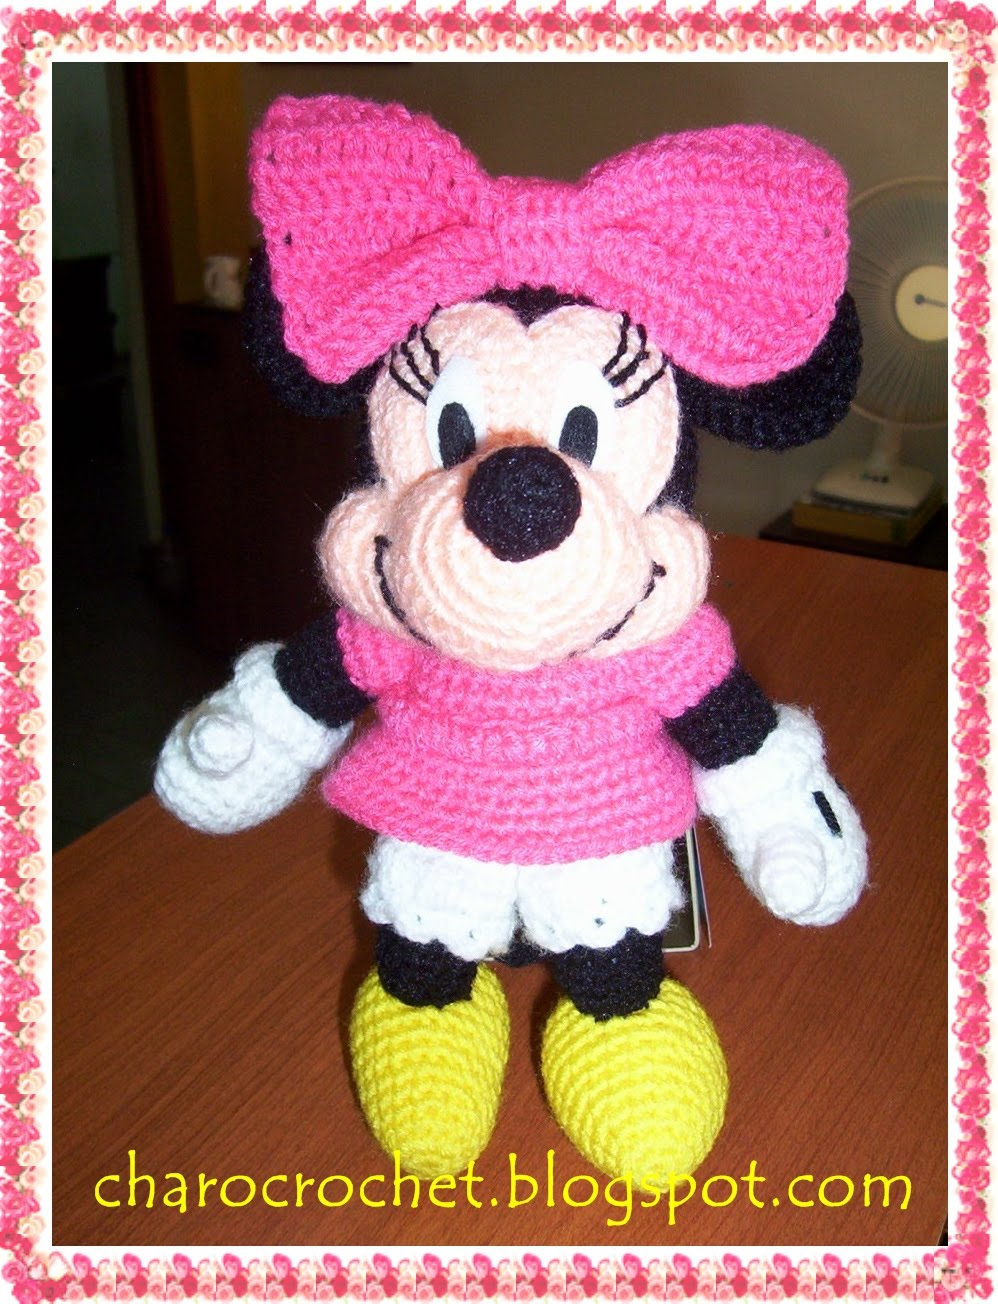 Crochet Patterns For Minnie Mouse : CHAROCROCHET PATRONES: MINNIE MOUSE